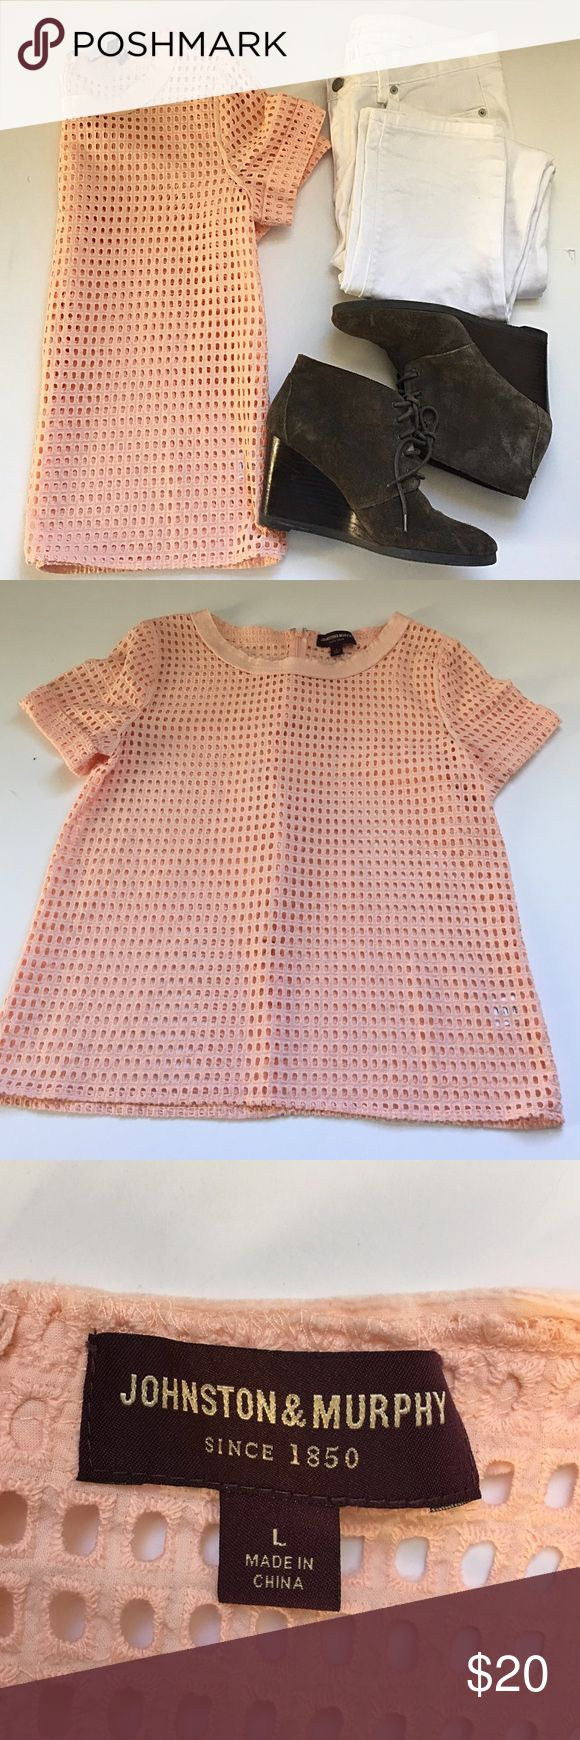 🎉clearance 🎉(PINK) fishnet tee Excellent used condition/ NO TRADES/ make me an offer/ measurements upon request/ smoke free pet free home!🎉💕😍 johnston&murphy Tops Blouses